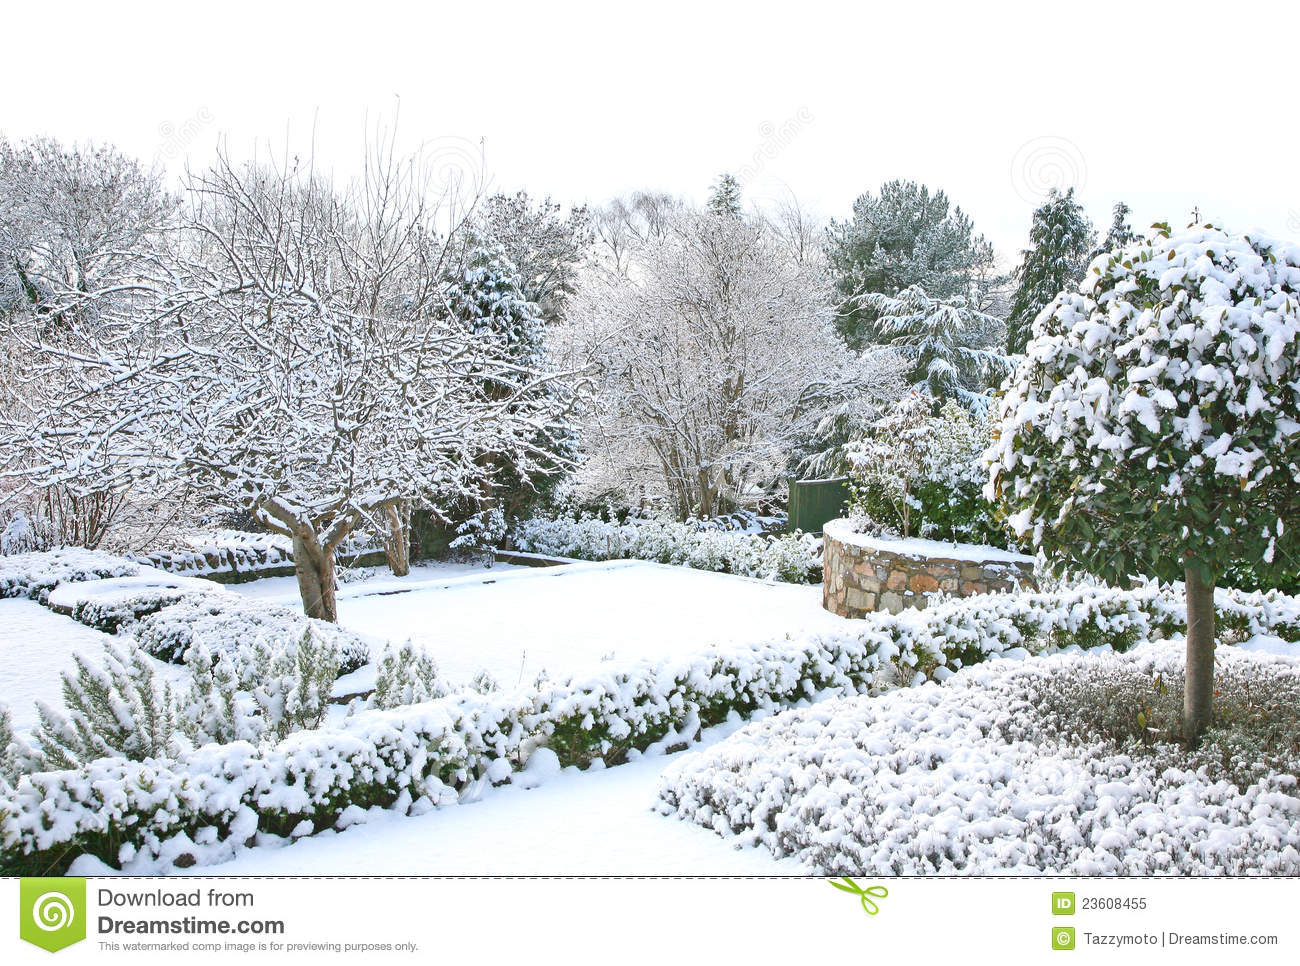 Winter garden stock image image of seasonal cold garden 23608455 - Gardening mistakes maintaining garden winter ...